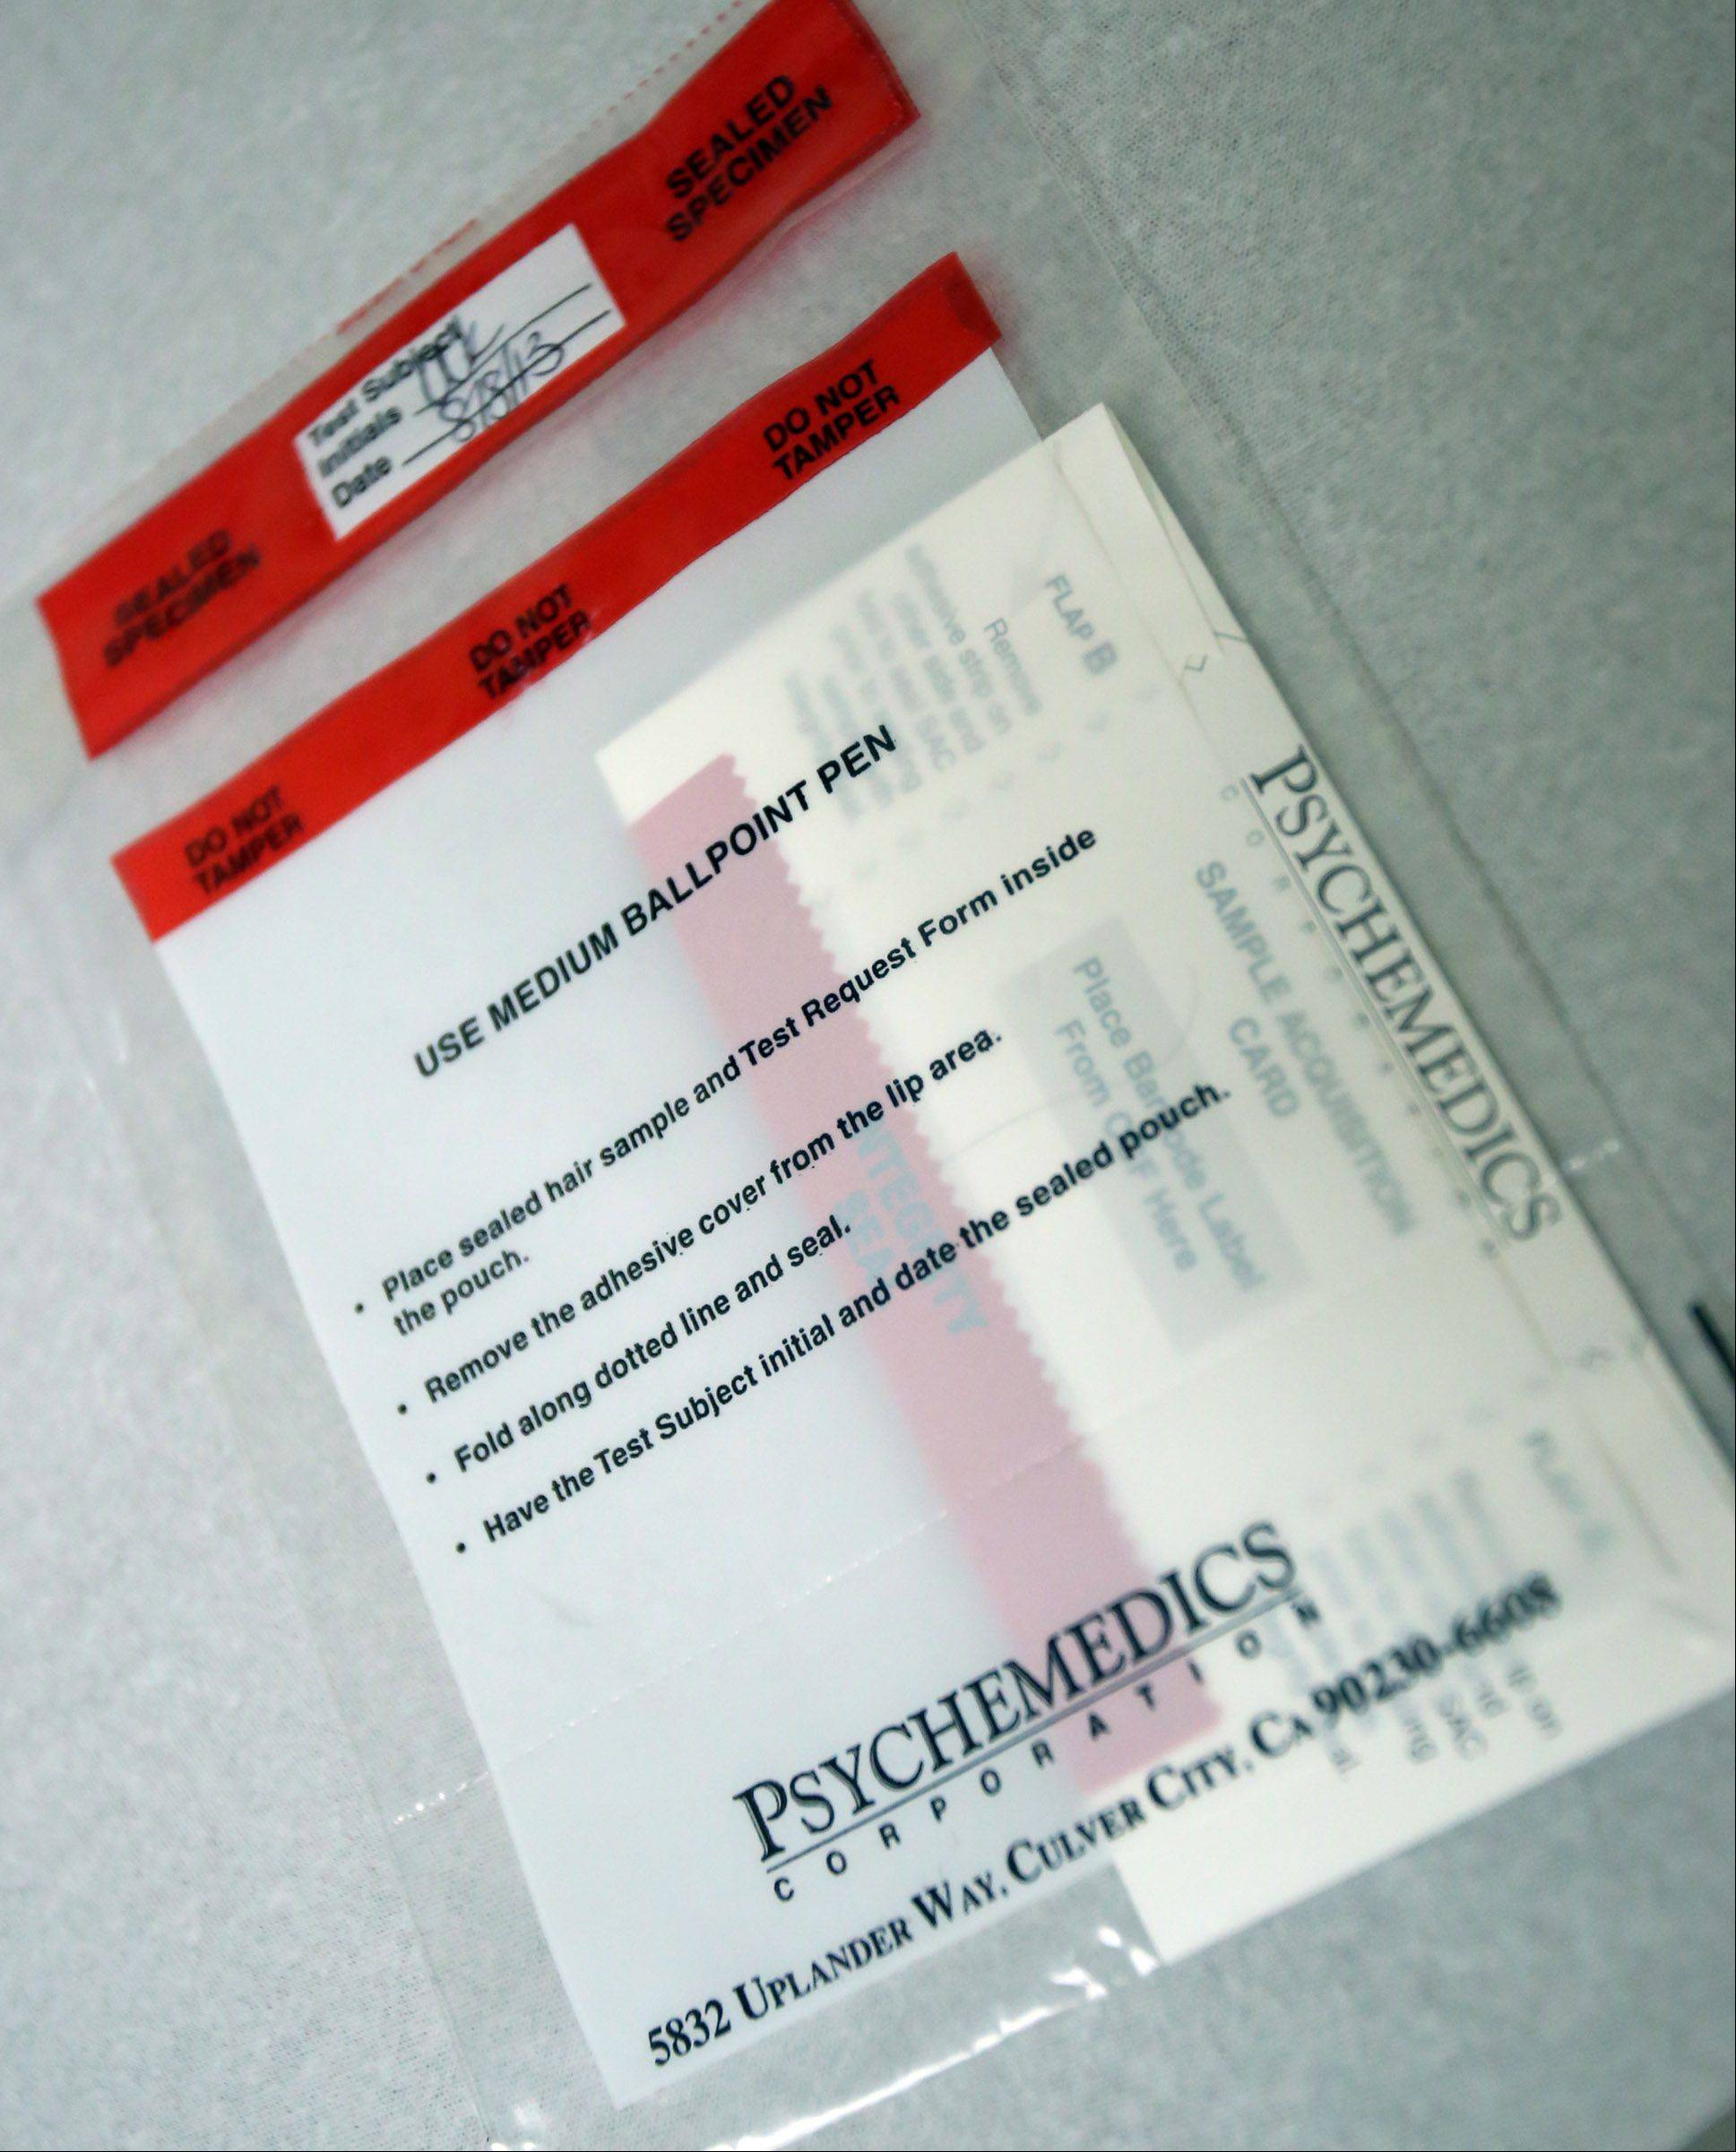 A hair sample bag for drug testing at Alexian Brothers Medical Group Immediate Care center in Palatine.